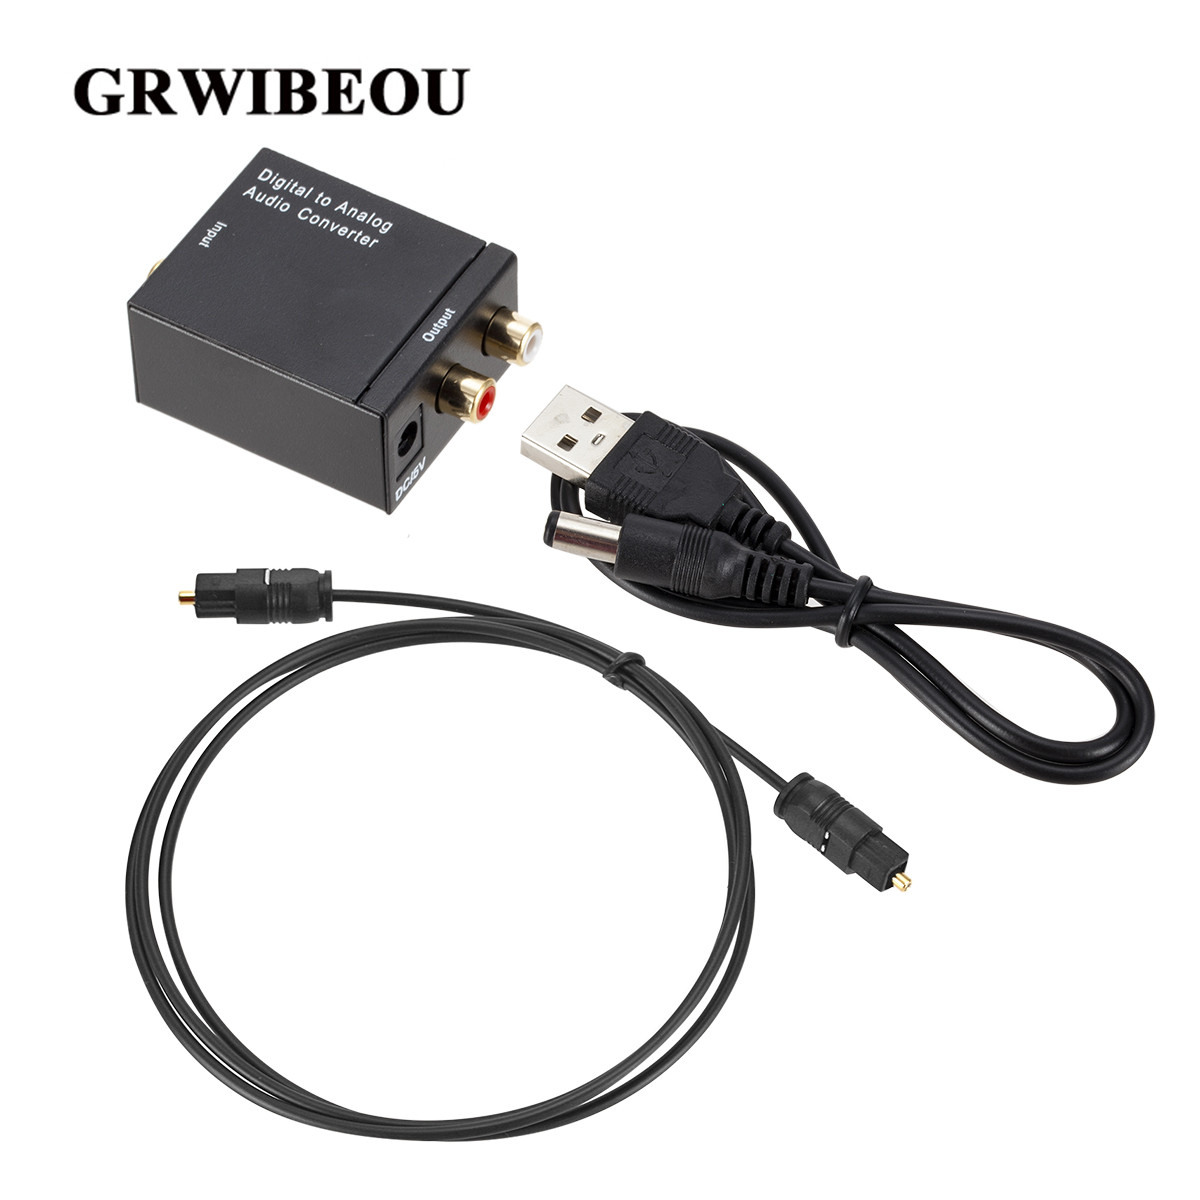 Grwibeou convertidor de audio digital a analógico de fibra óptica - Audio y video portátil